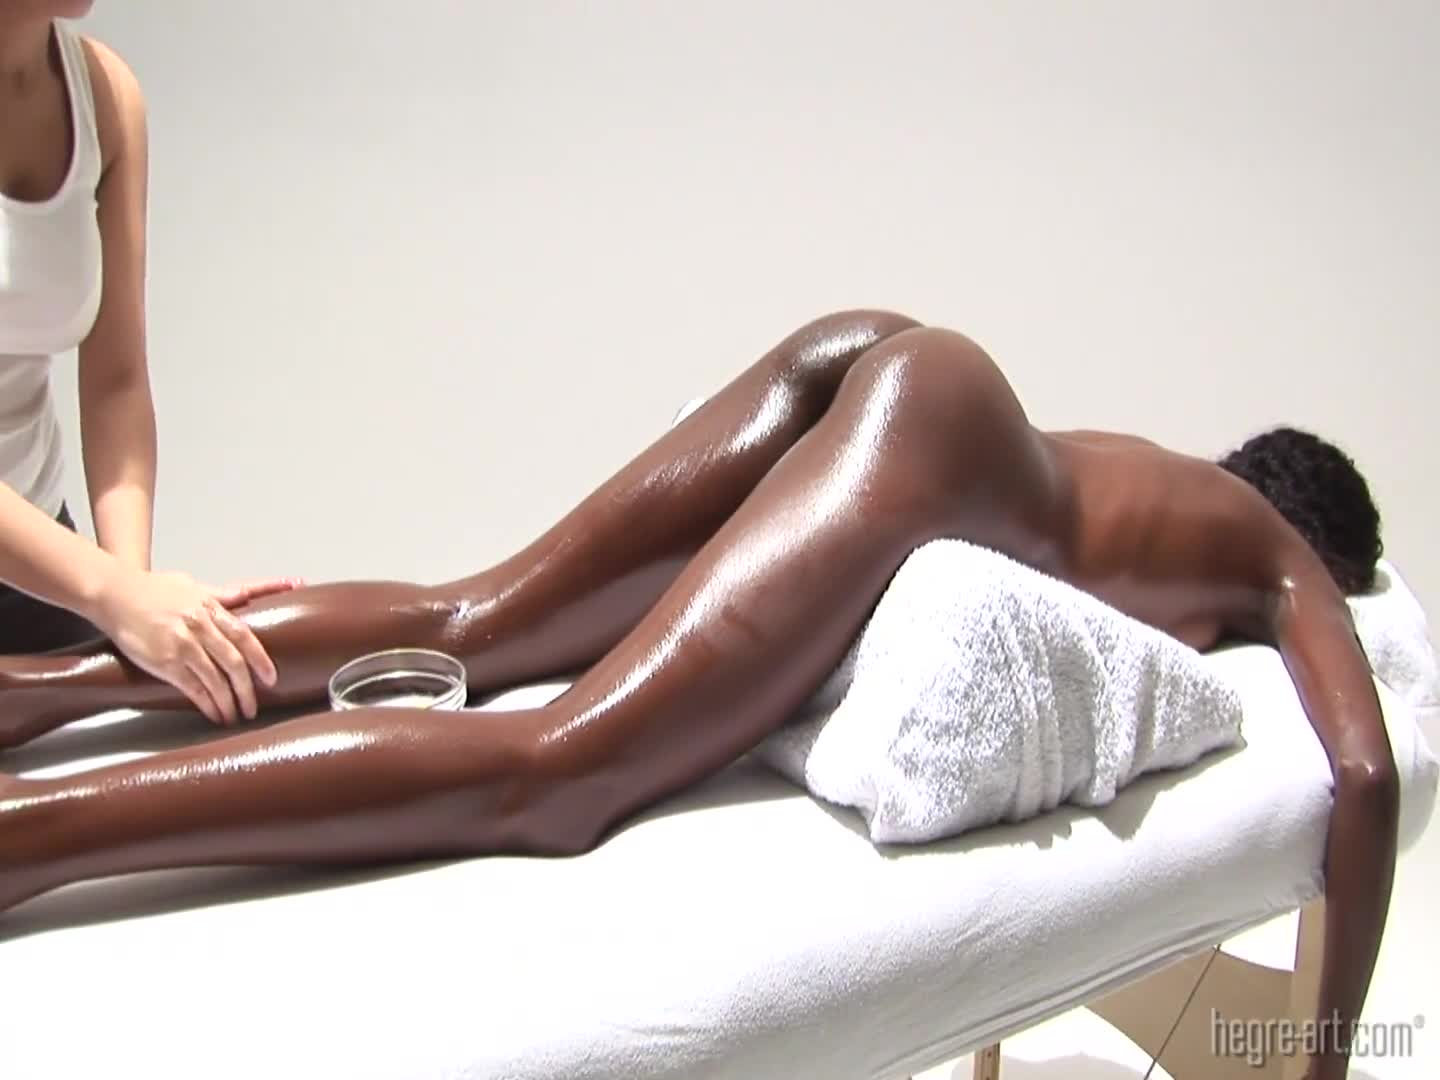 Hegre-Art - Valerie - Black Magic Massage